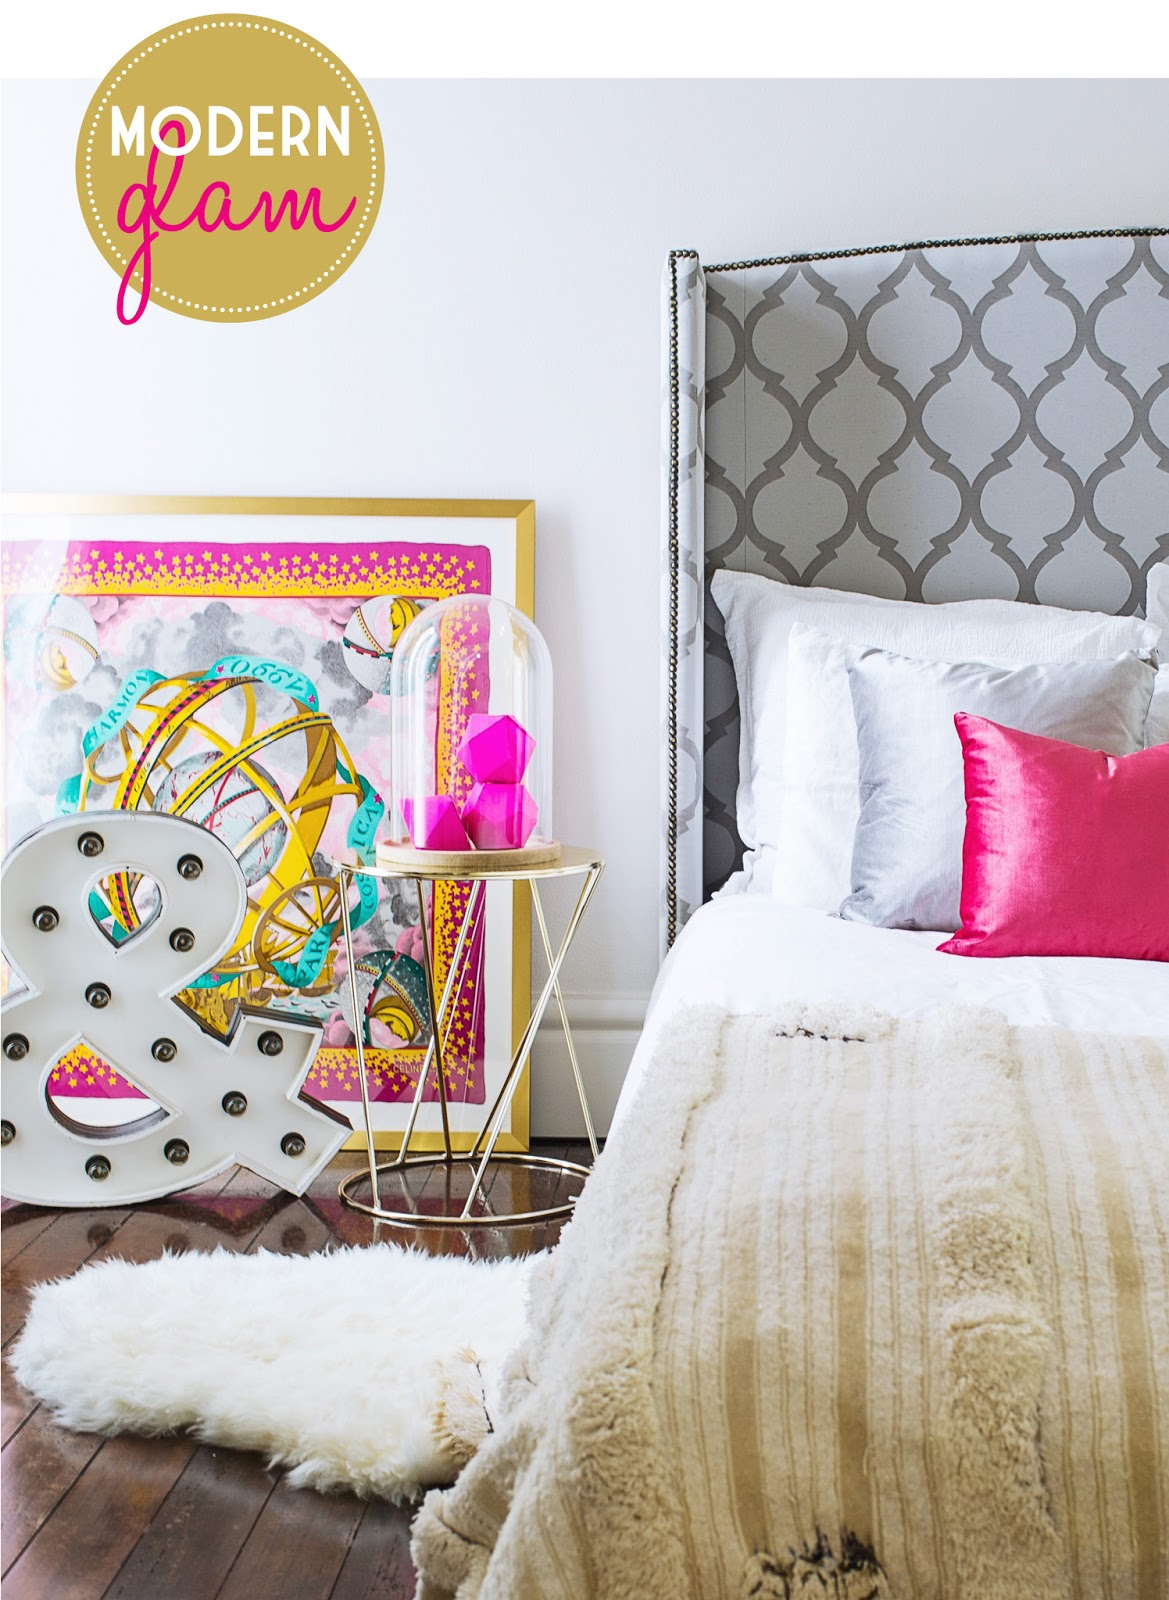 Lotus  Fig In Print Bold Color - Modern glam bedroom